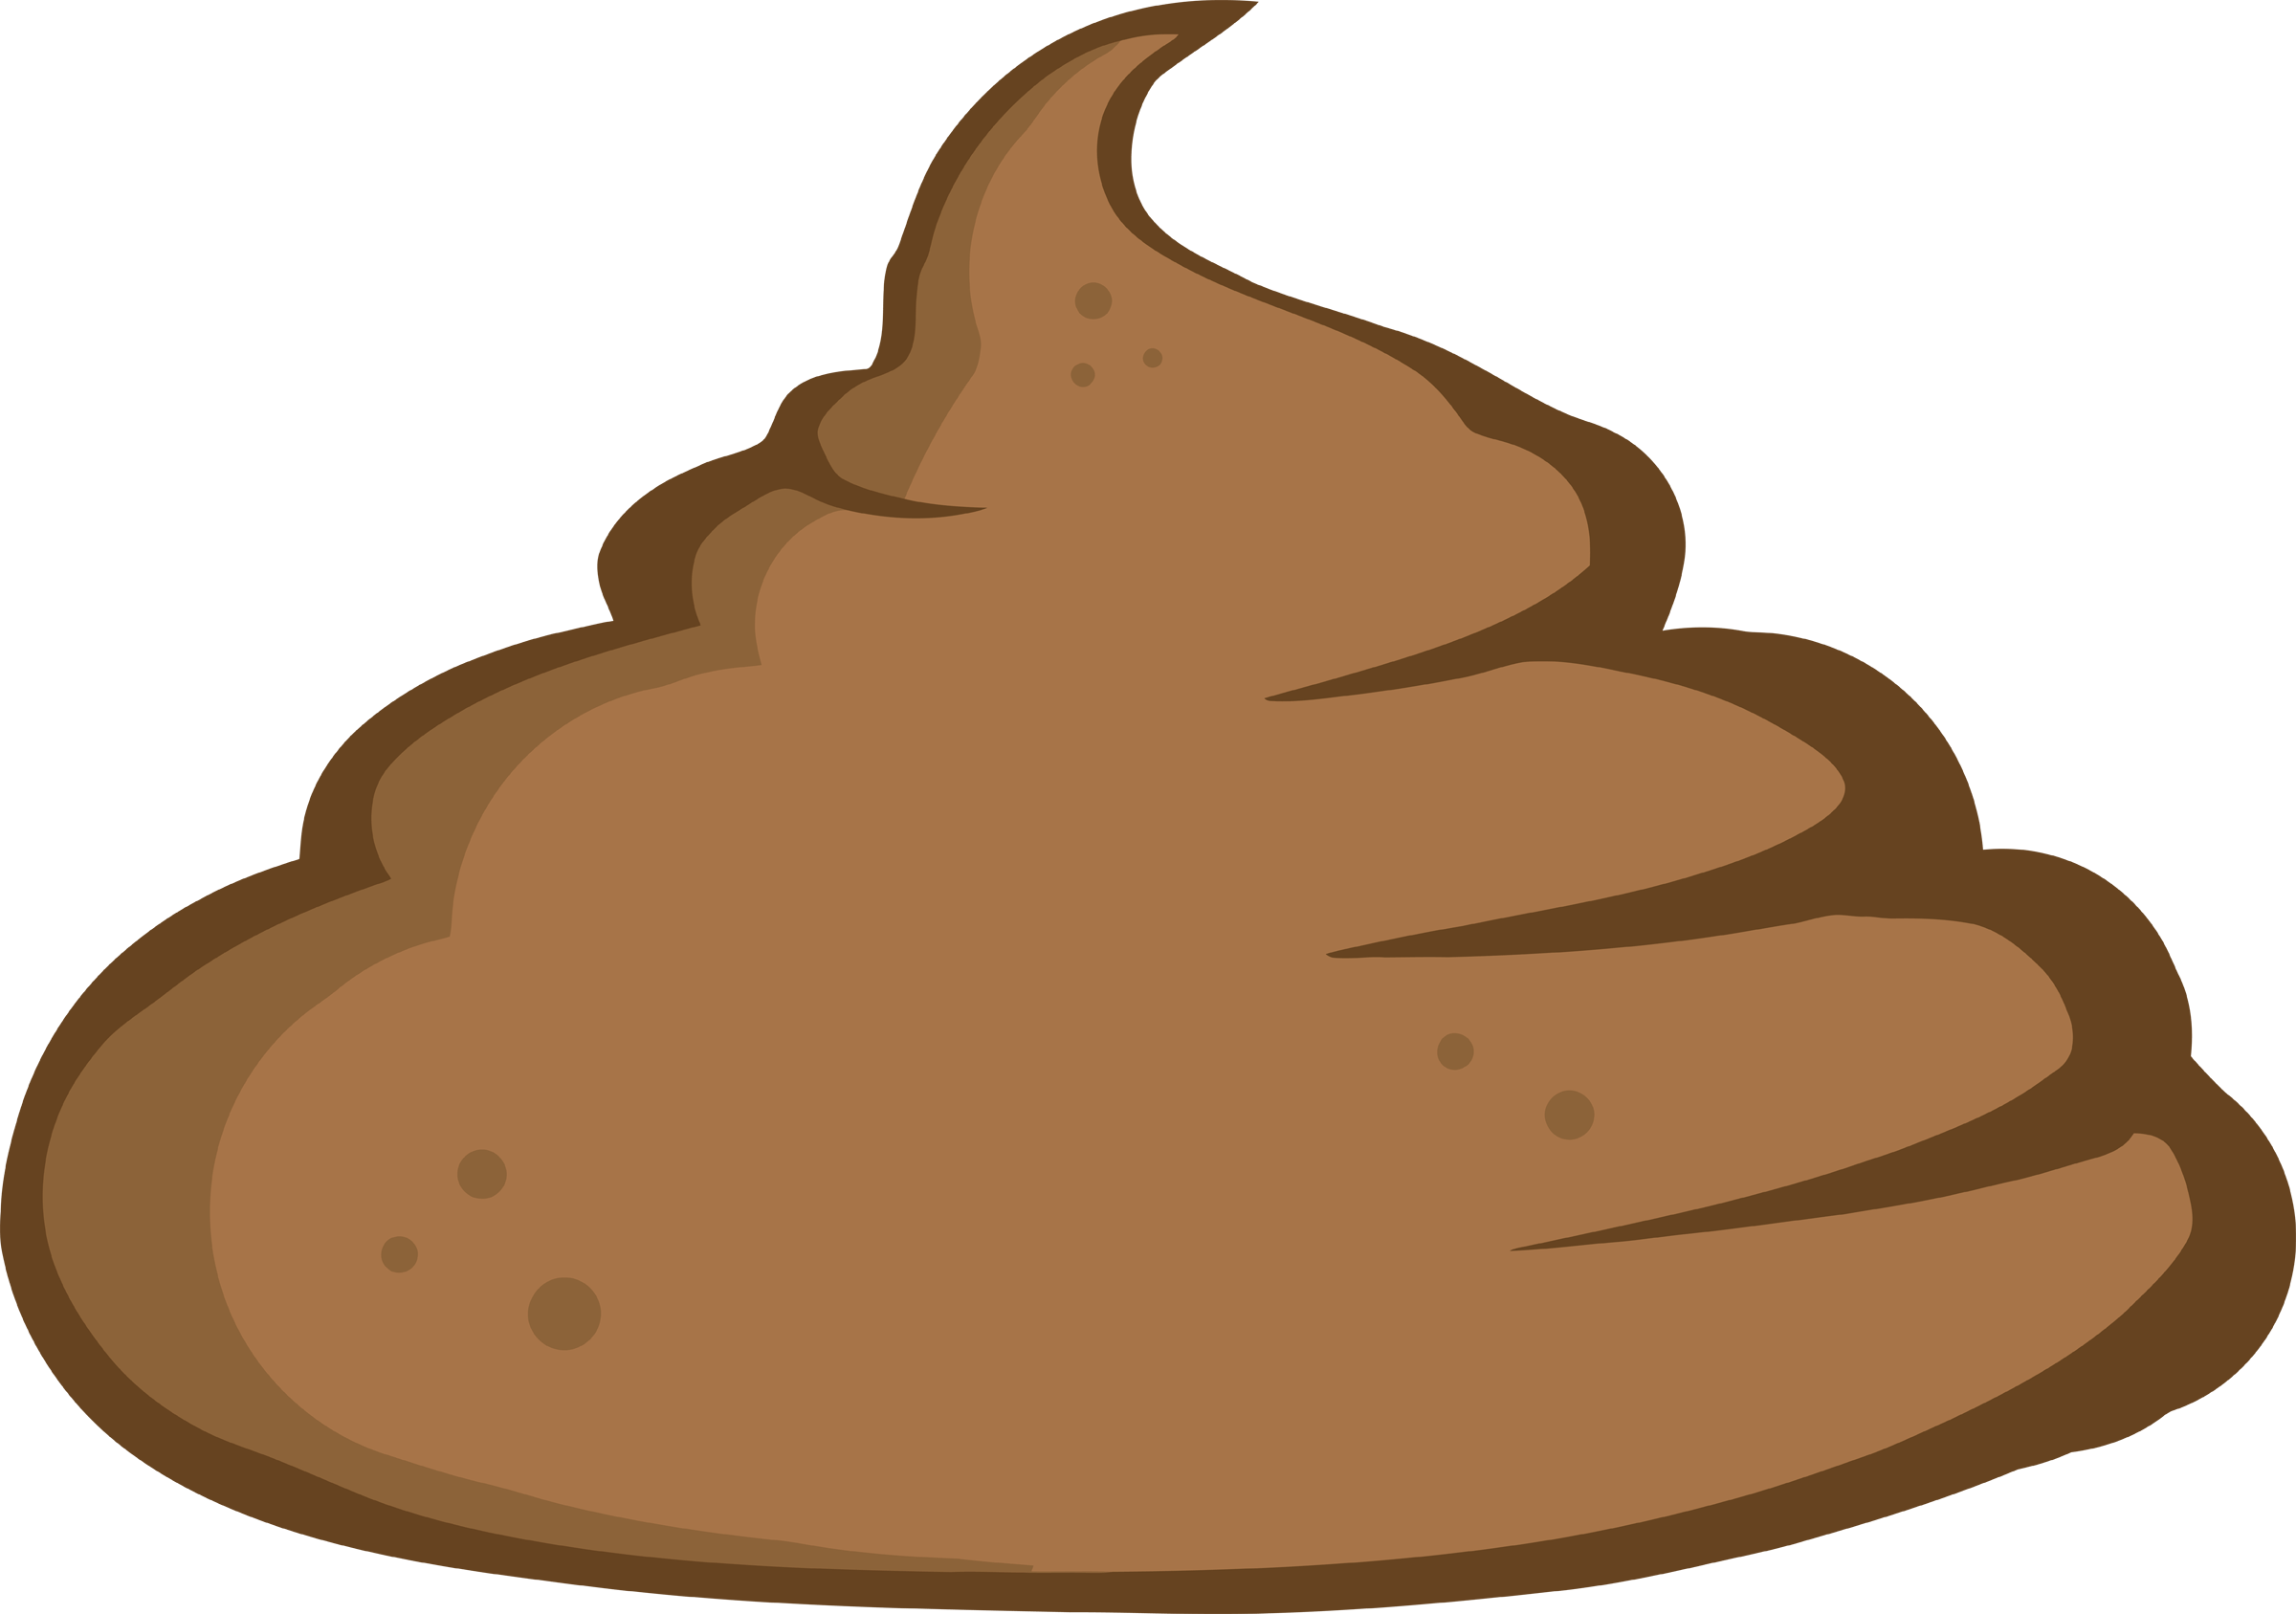 2400x1687 15 Shit Vector Cartoon Poop For Free Download On Mbtskoudsalg